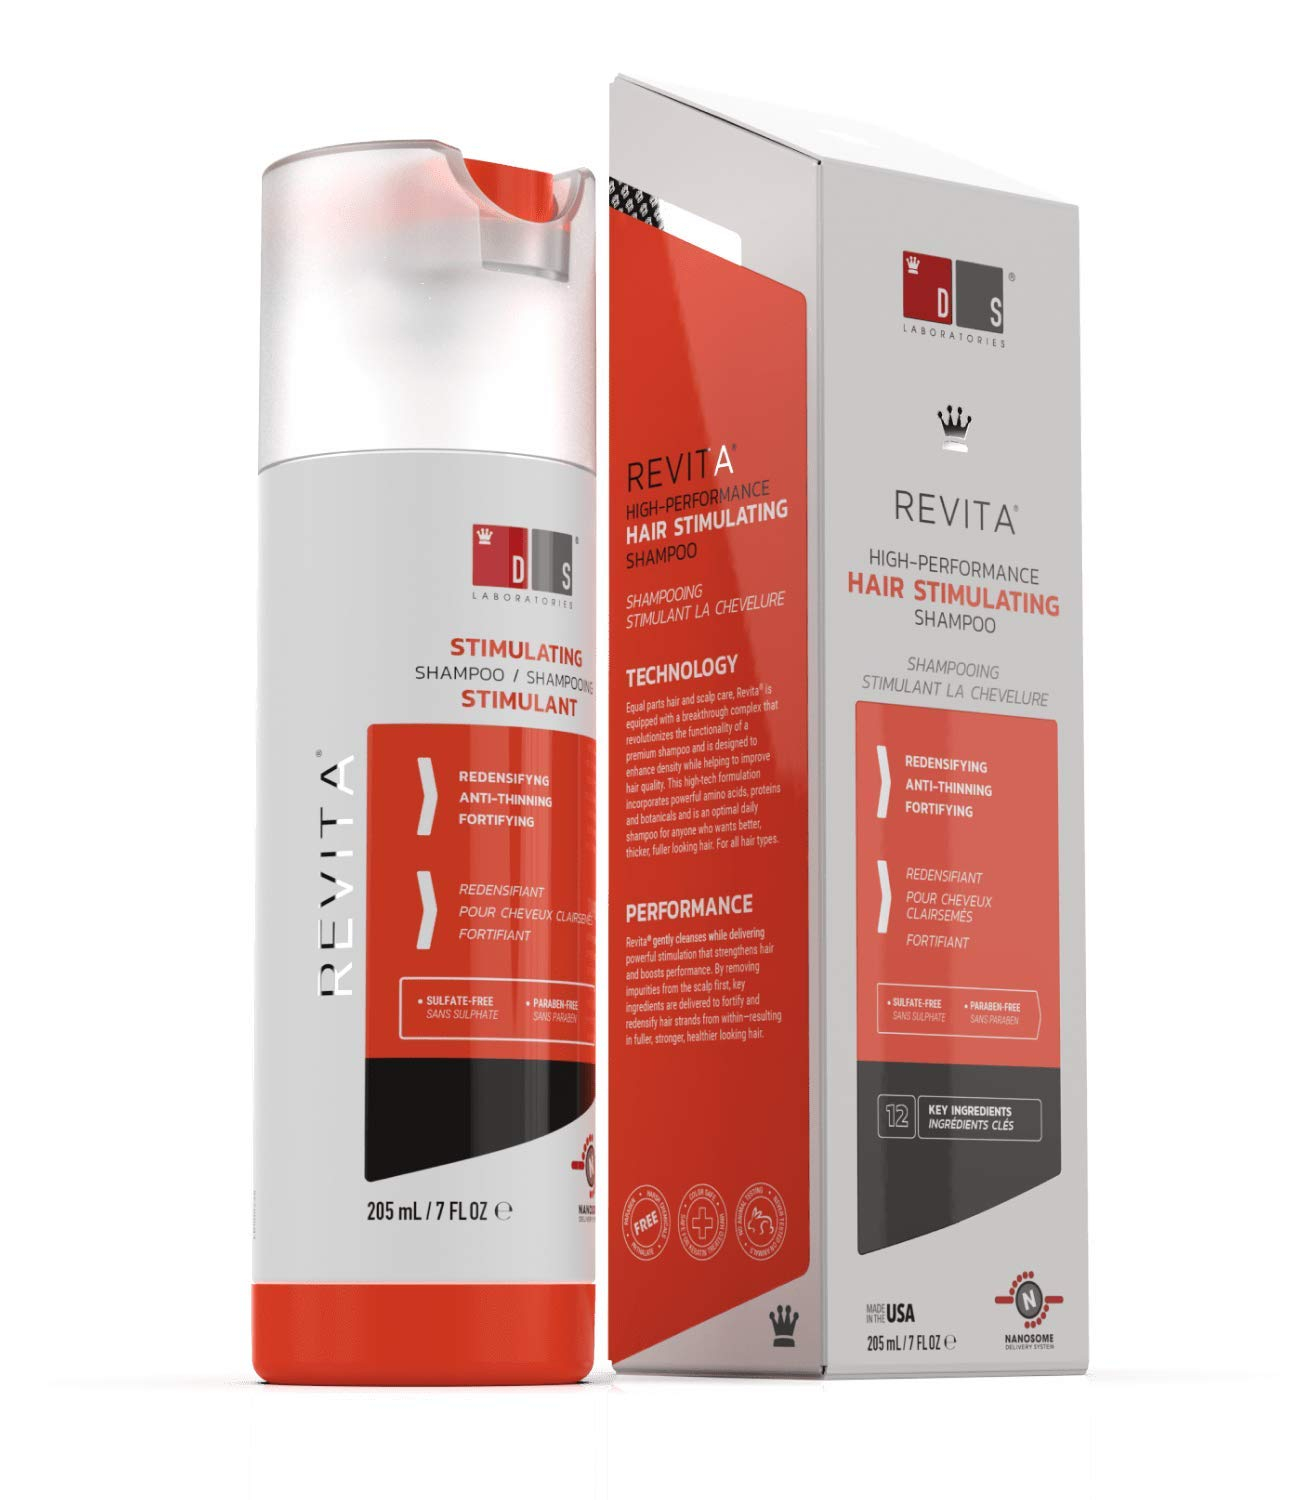 Revita Stimulating Shampoo Supports Hair Loss, Thinning Hair and Scalp - 205ml - Block DHT